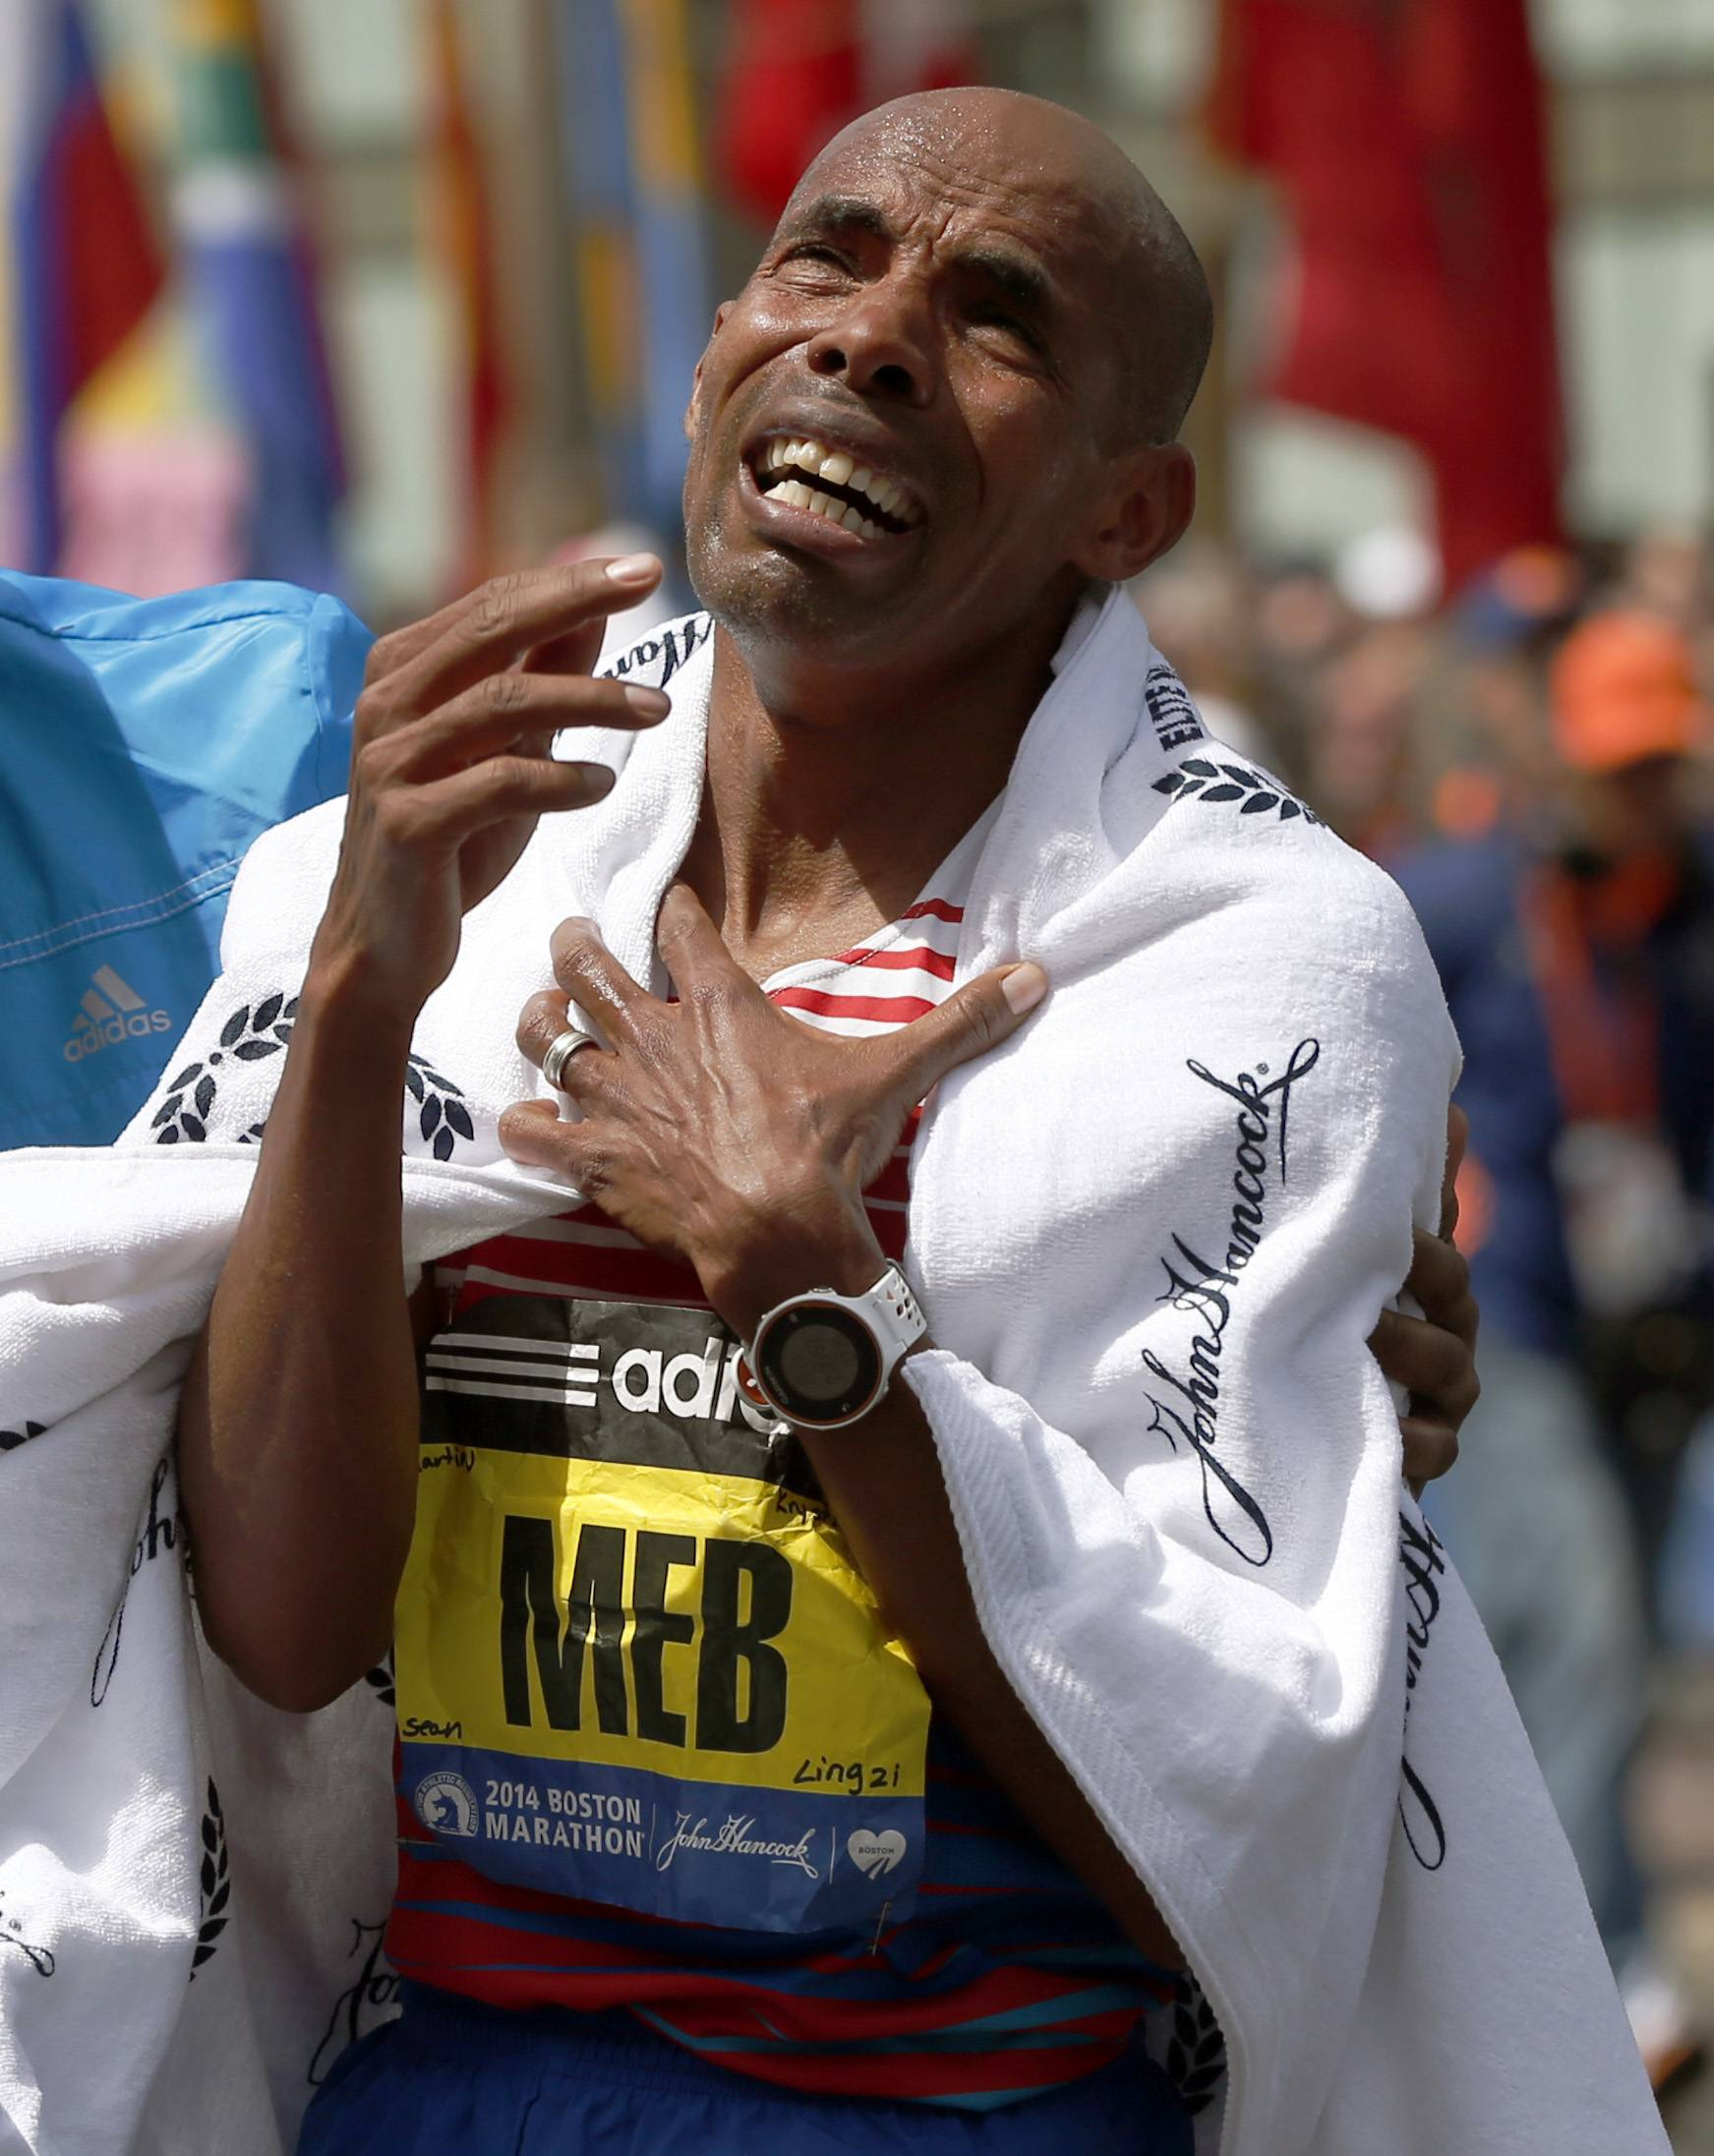 Meb Keflezighi, of San Diego, Calif., becomes emotional after winning the 118th Boston Marathon, Monday, April 21, 2014, in Boston.